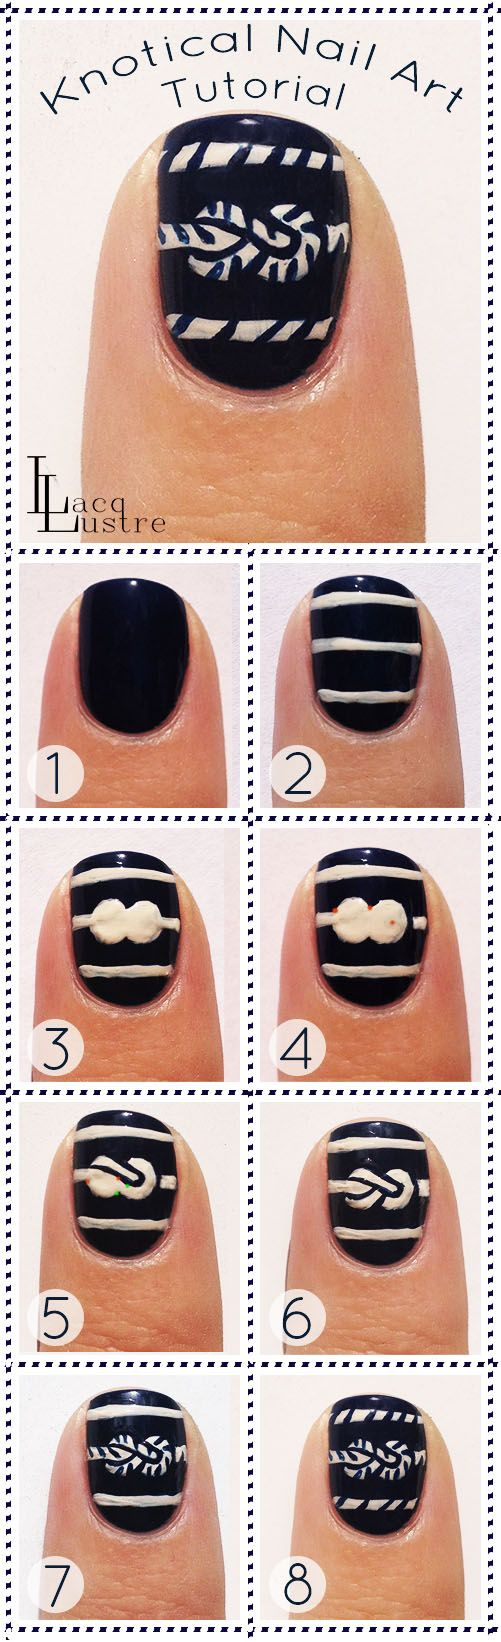 96 best nail designs images on pinterest beautiful nail designs knotical nautical tutorial by lacqlustre httplacqlustre2014 prinsesfo Choice Image